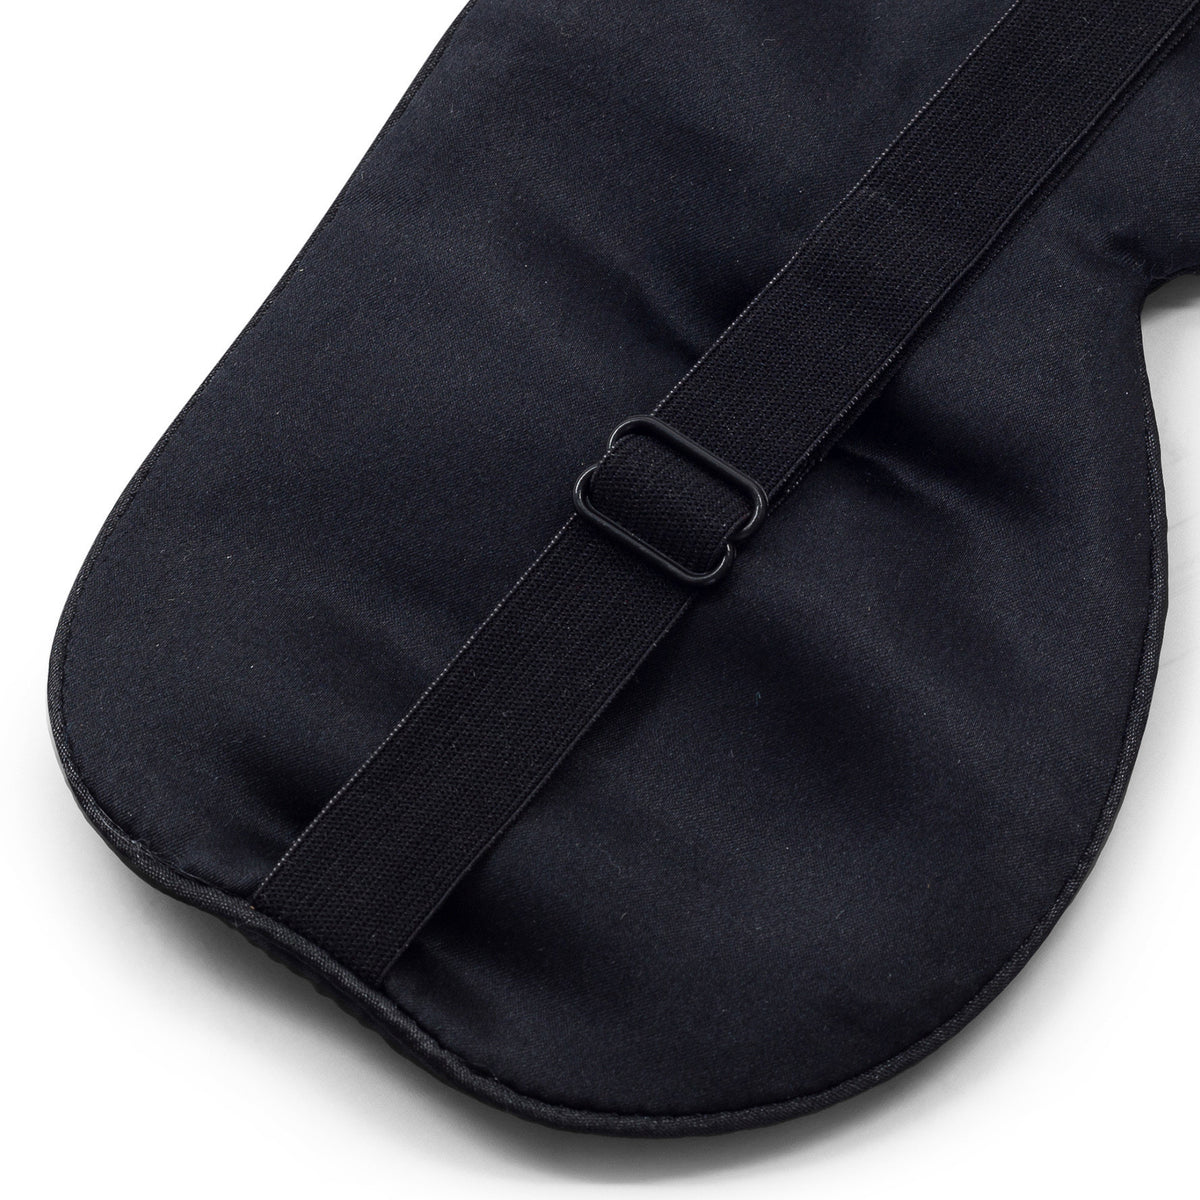 100% Pure Mulberry Silk Black Eye Mask with an Adjustable Strap